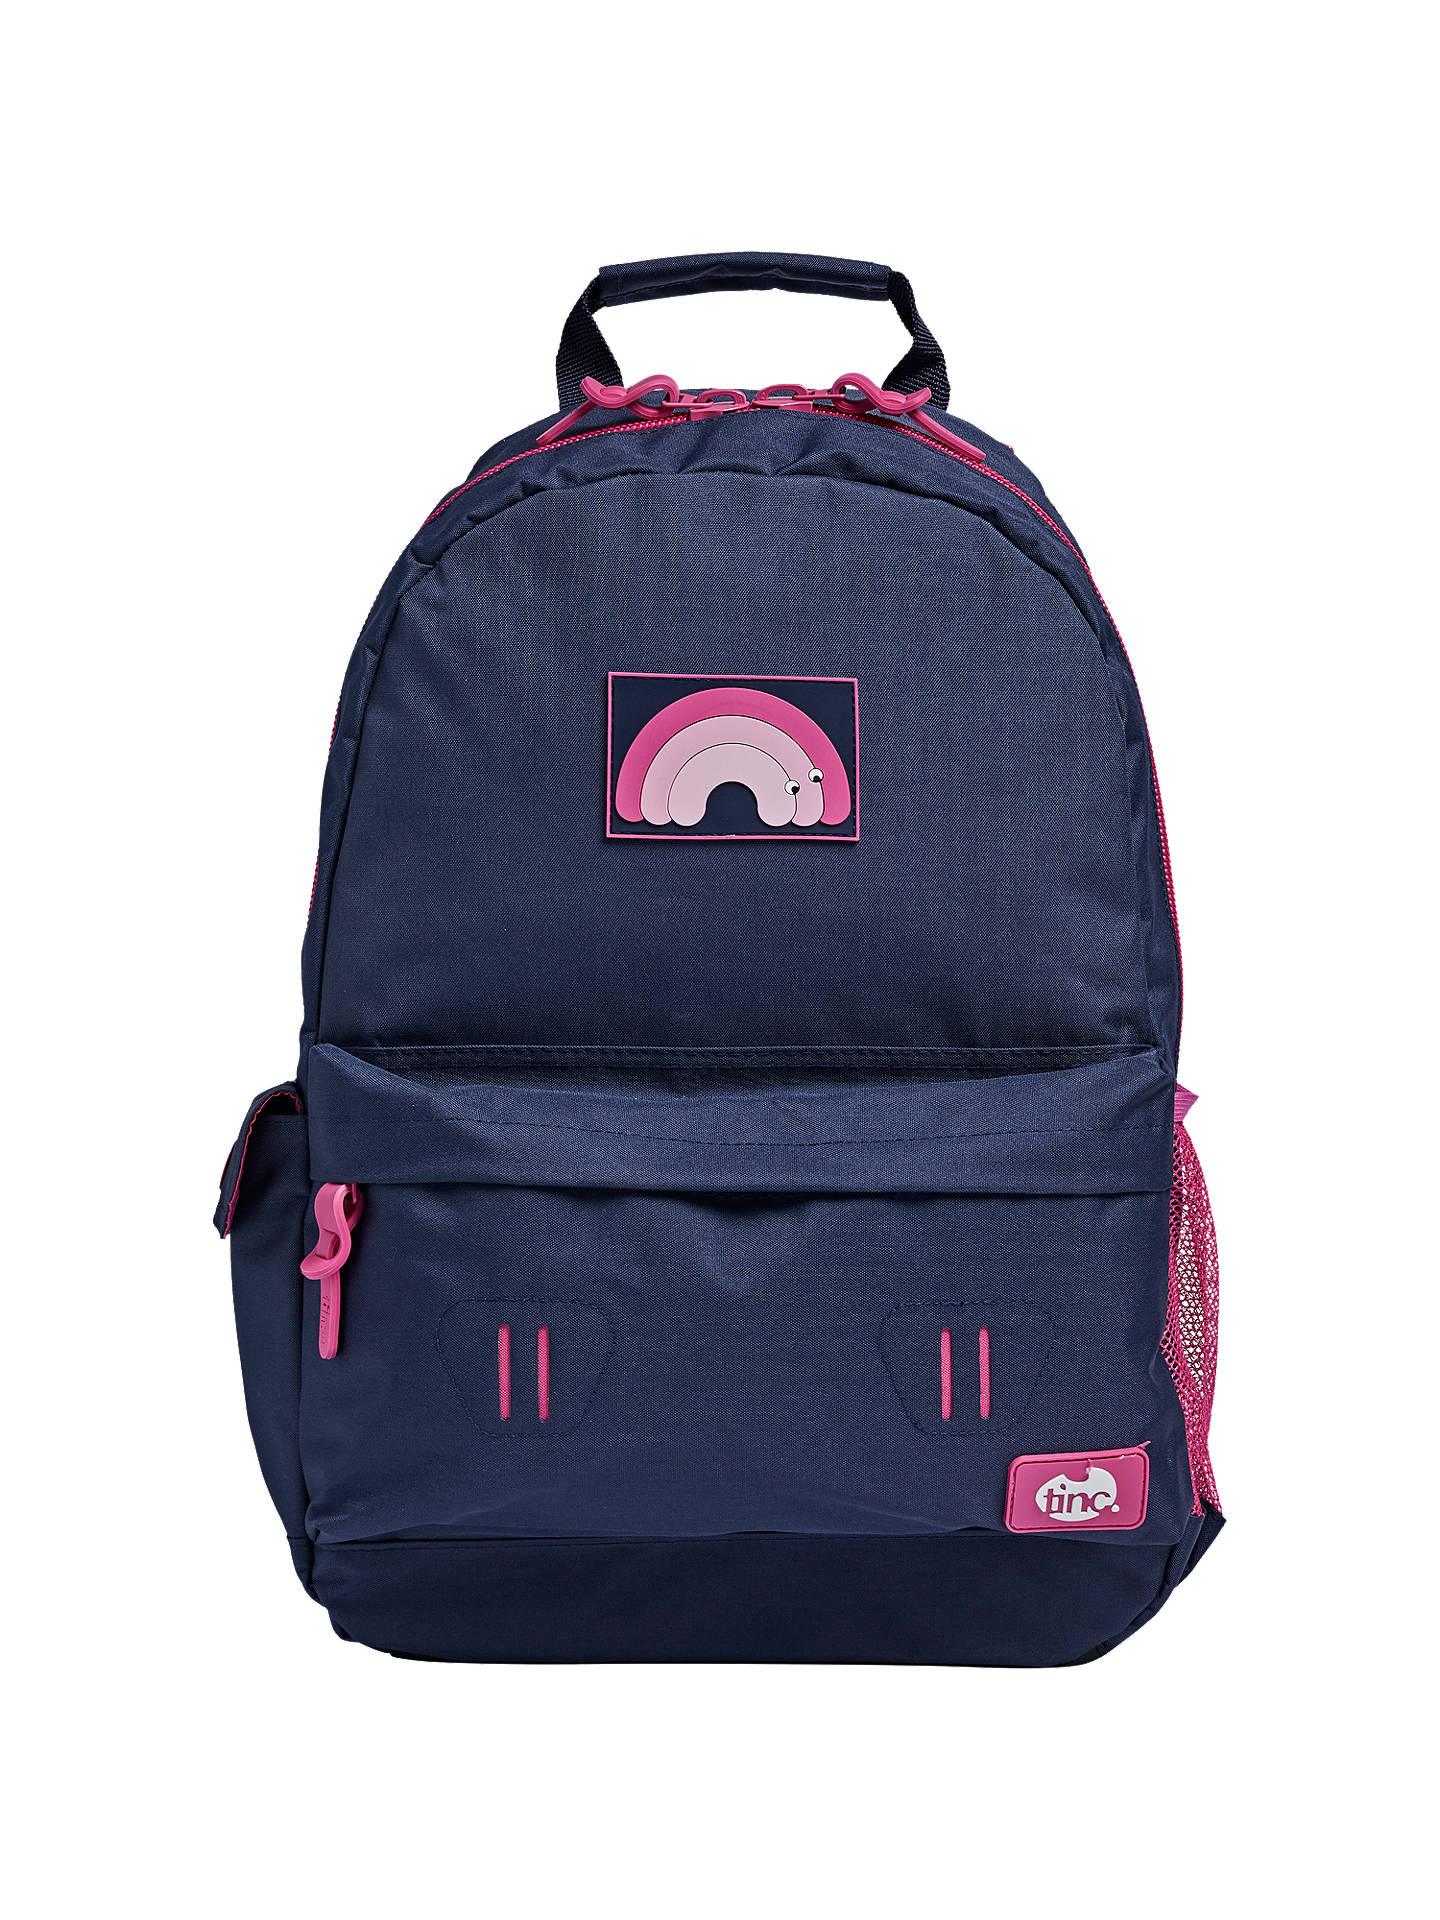 BuyTinc Mallo Adventure Backpack, Navy/Pink Online at johnlewis.com